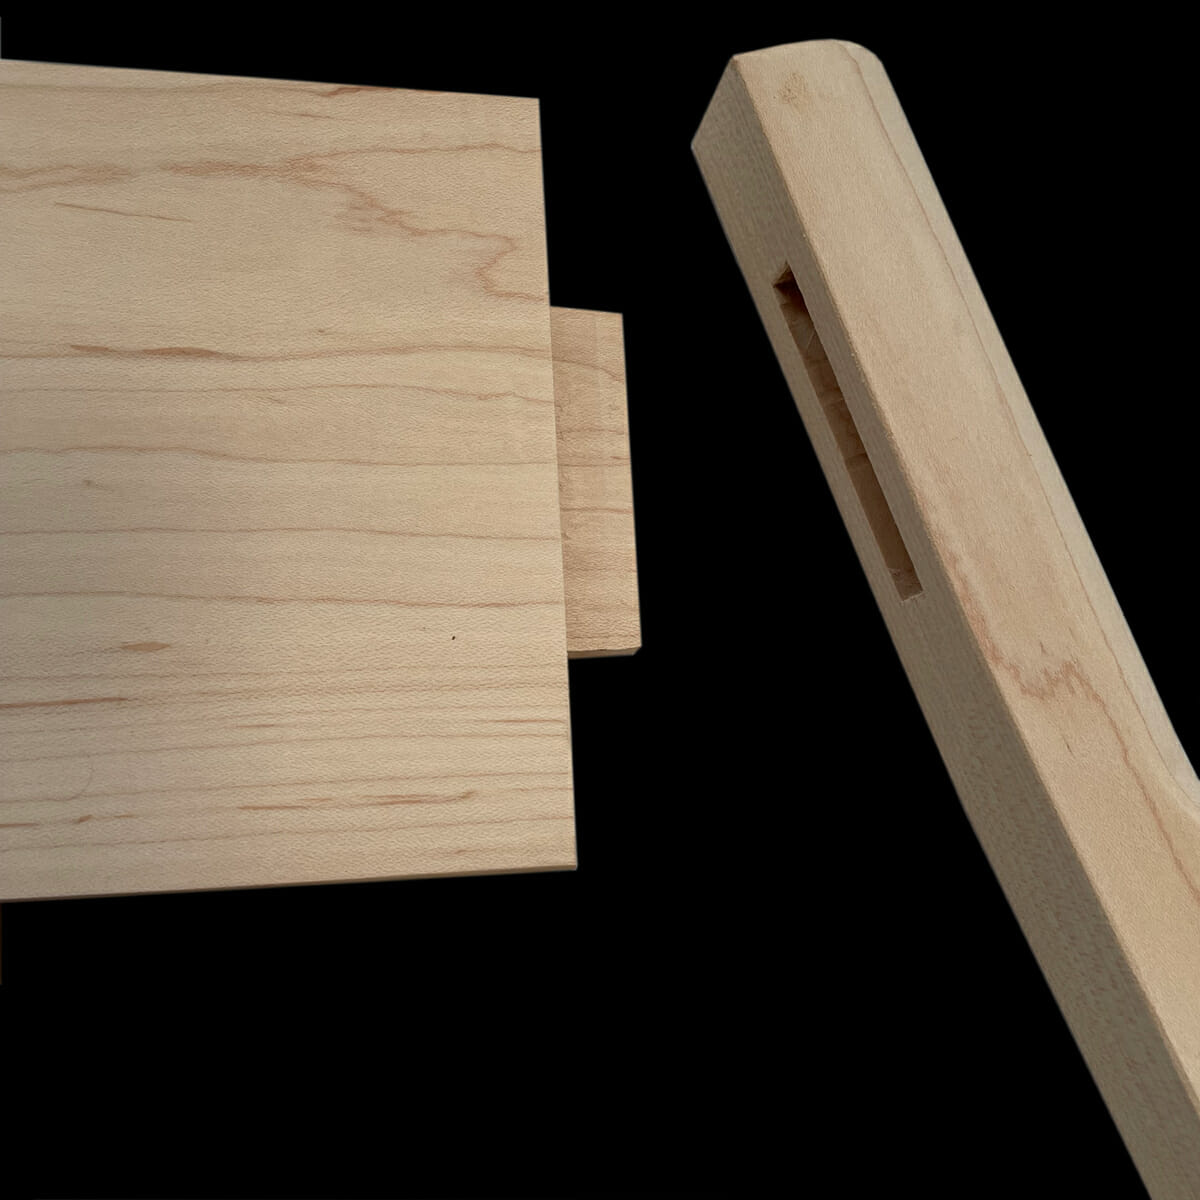 Mortise and Tenon wood joints